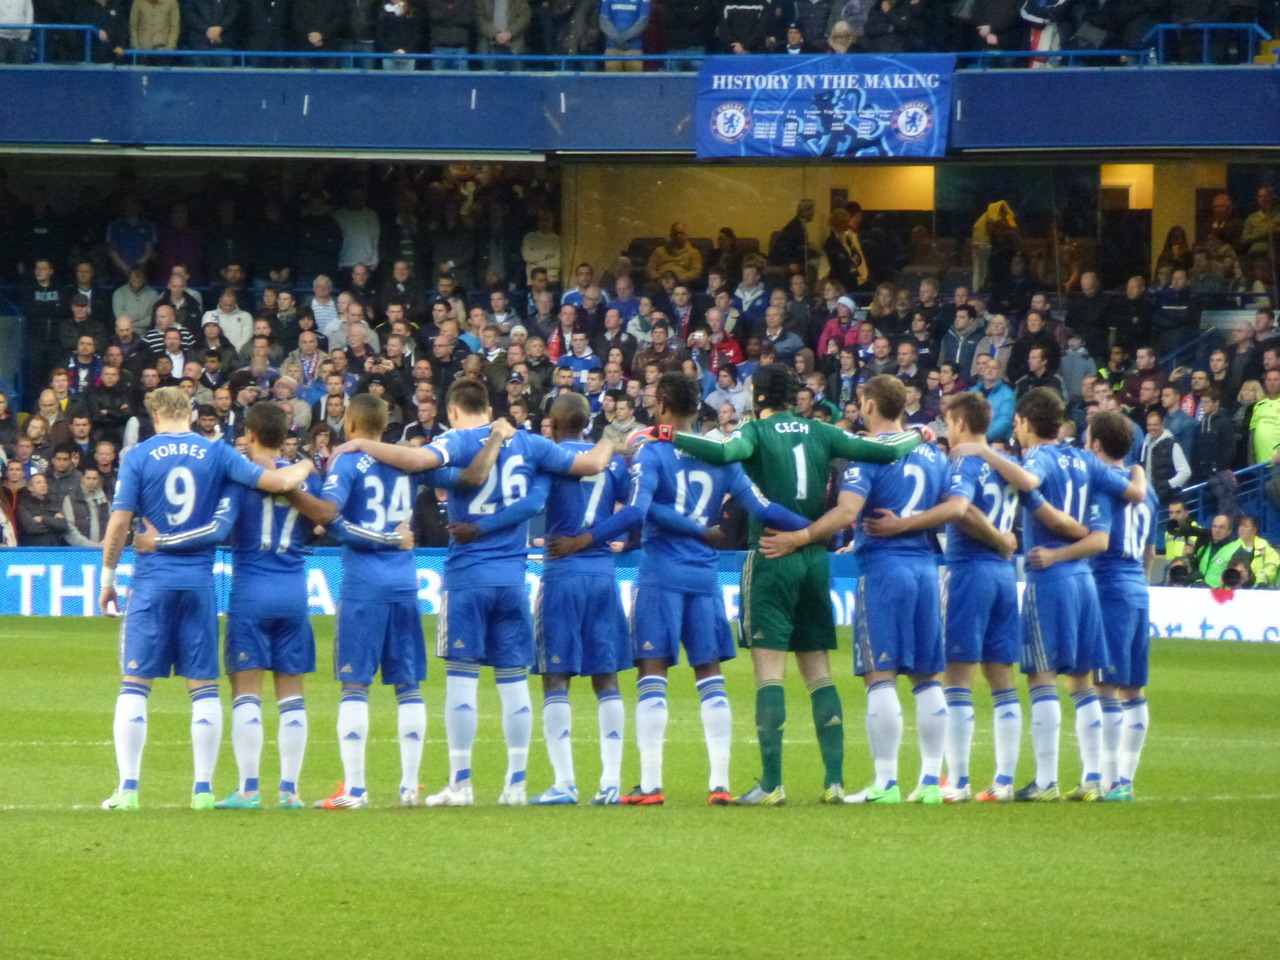 My Photo of Chelsea FC showing the world that football is about RESPECT #adidasphoto